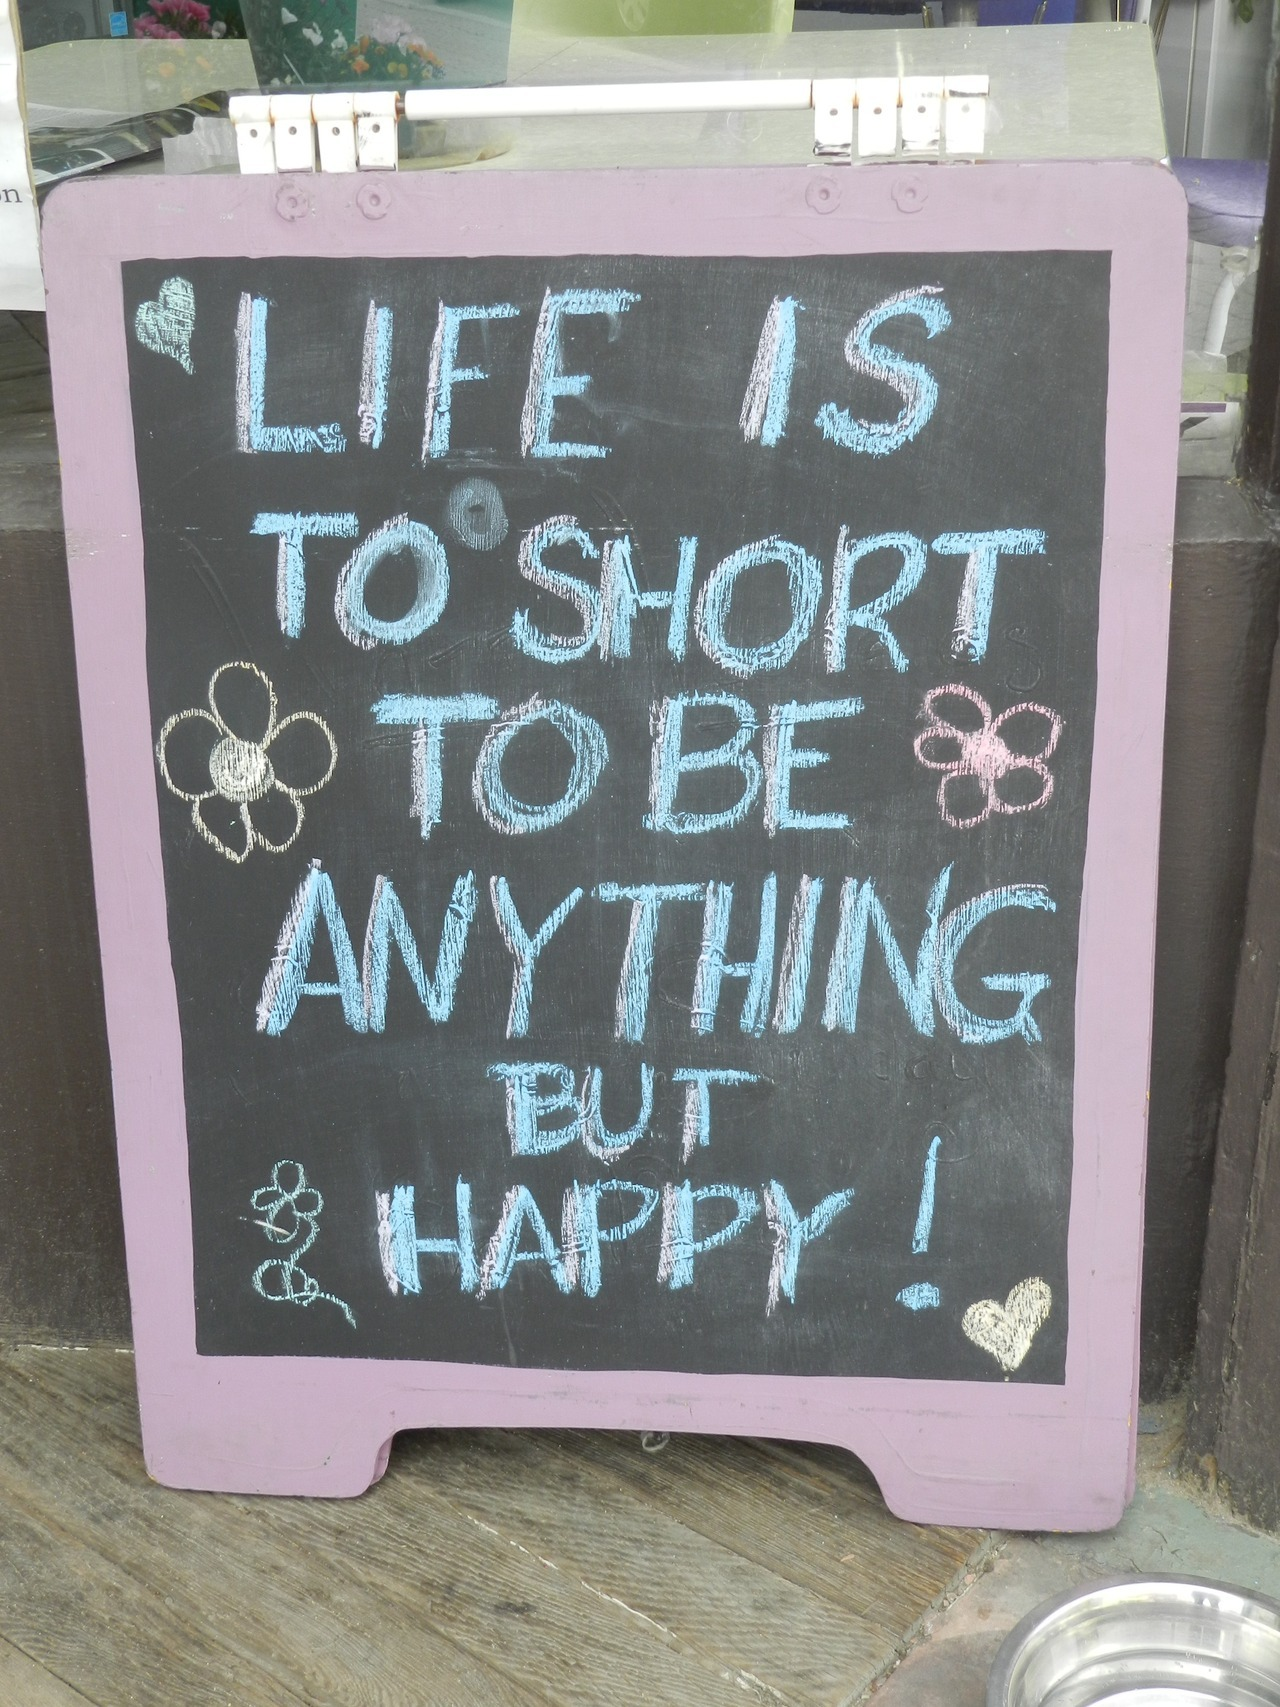 Saw this sign outside yesterday and thought I'd share it with you. Such a wonderful reminder!